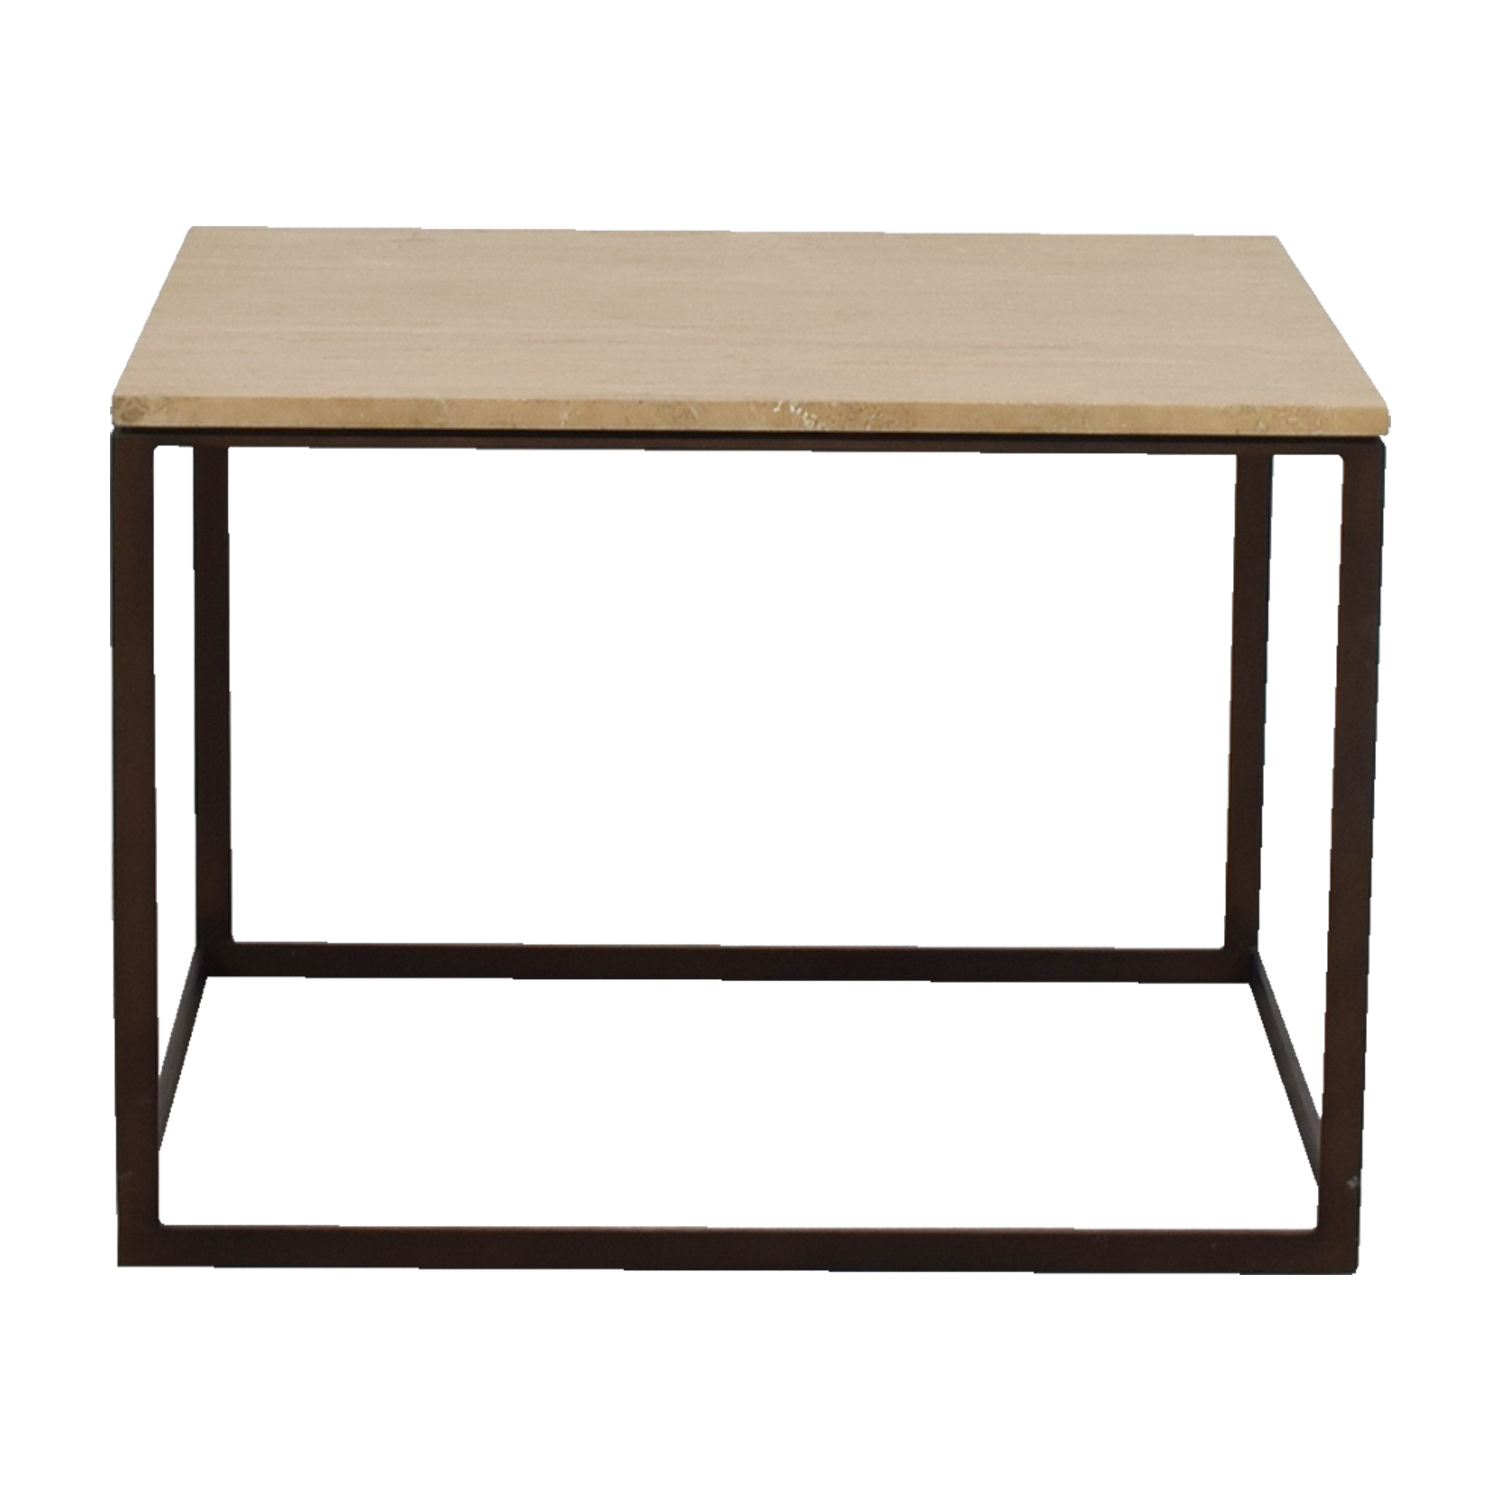 Mitchell Gold + Bob Williams Allure Side Table sale